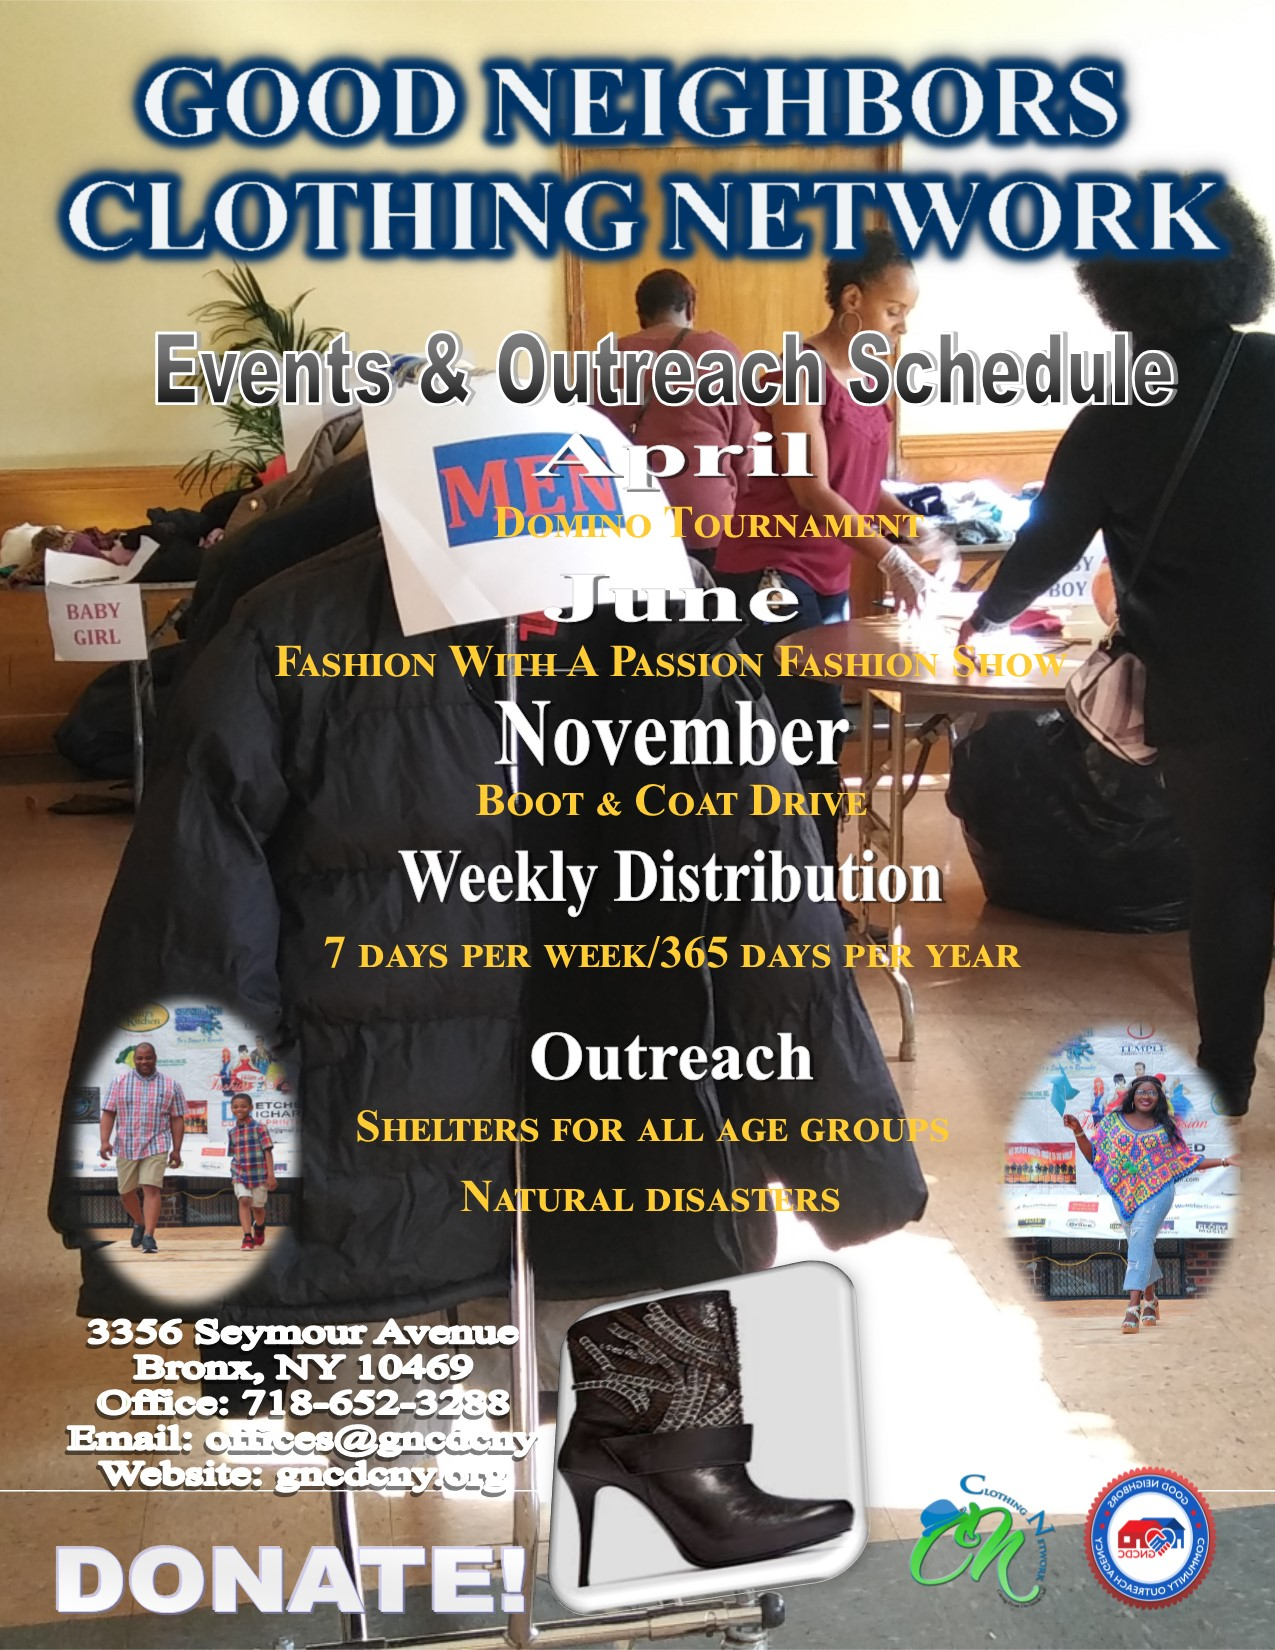 Clothing Network Promotional flyer